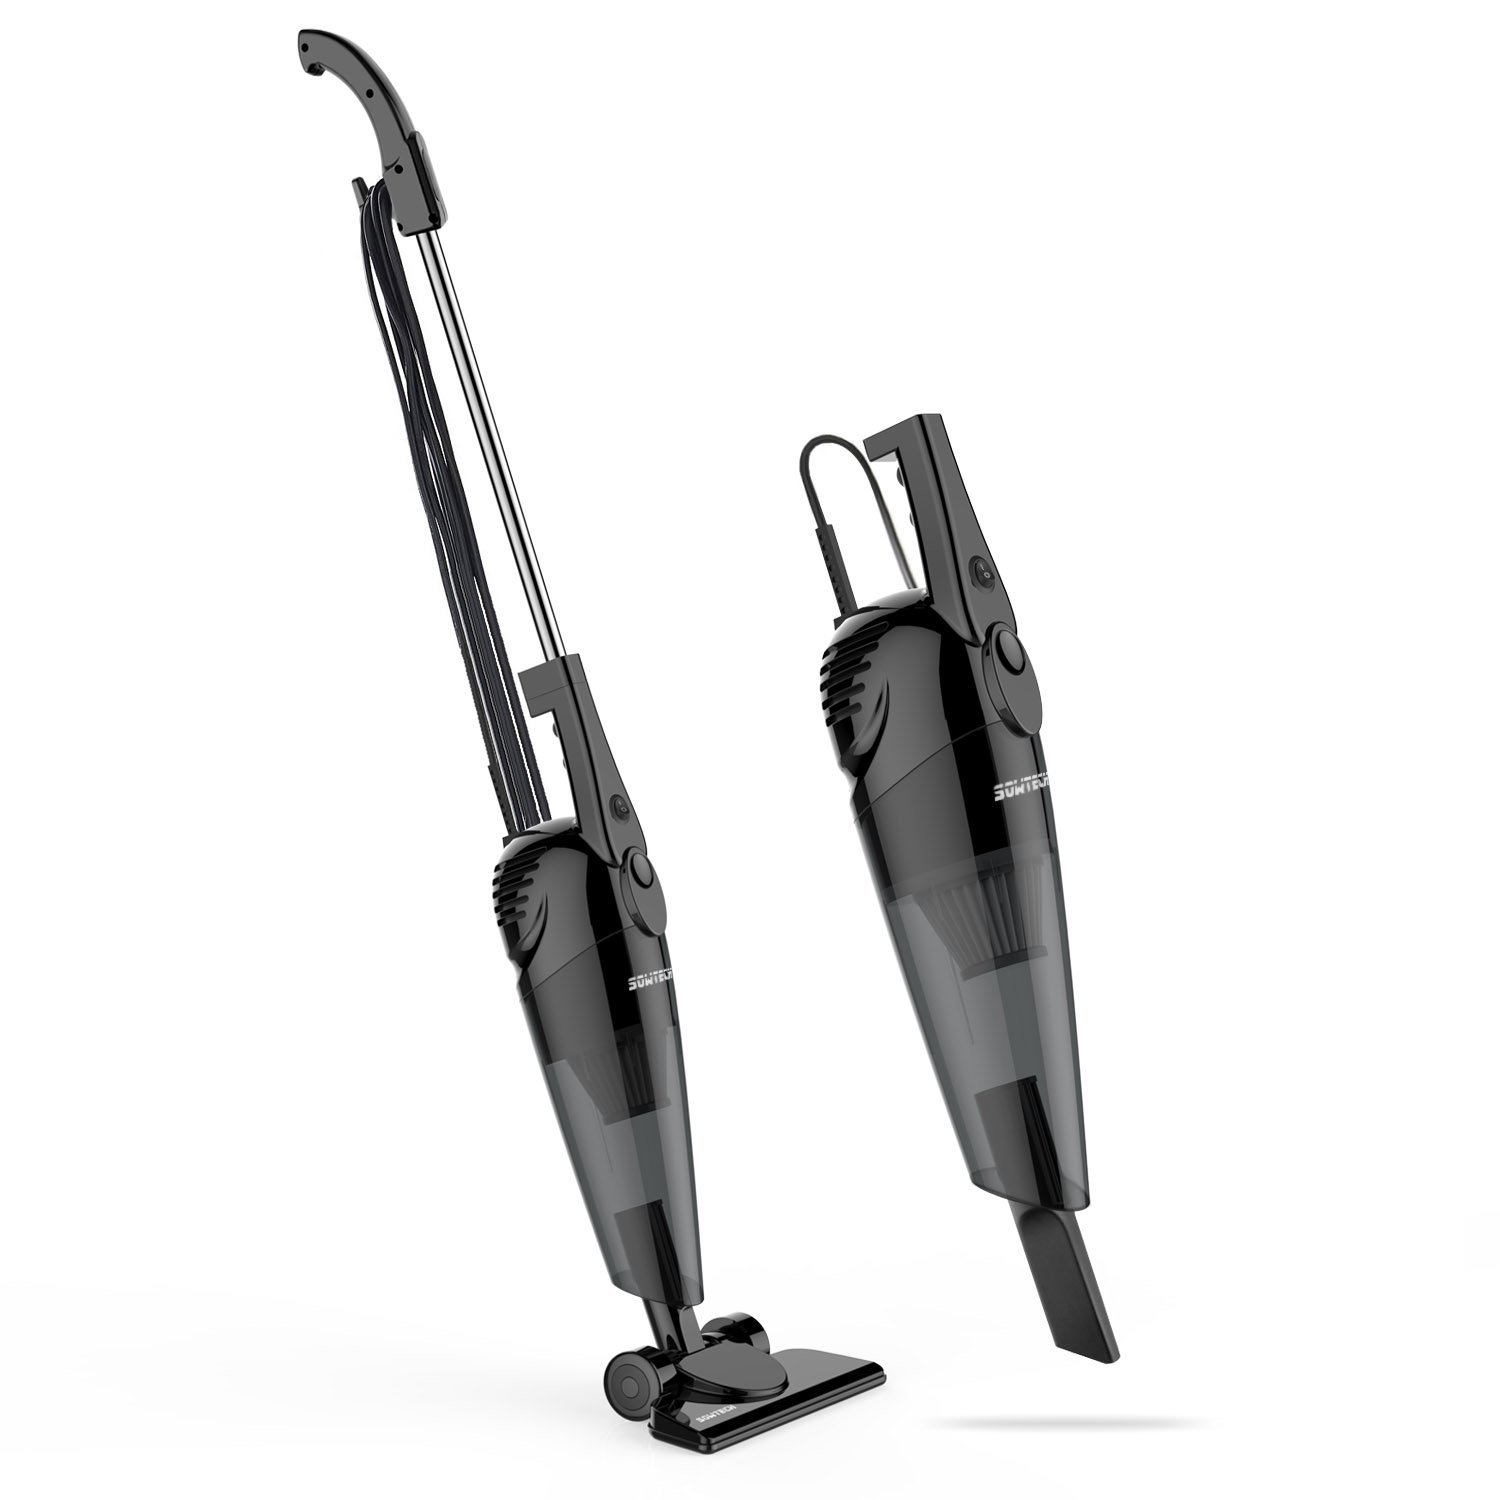 SOWTECH Stick Vacuum 2 in 1 Lightweight Corded Upright and Handheld Vacuum Cleaner, HEPA Filtration (Bagless), Come with Crevice Tool and Brush Accessories